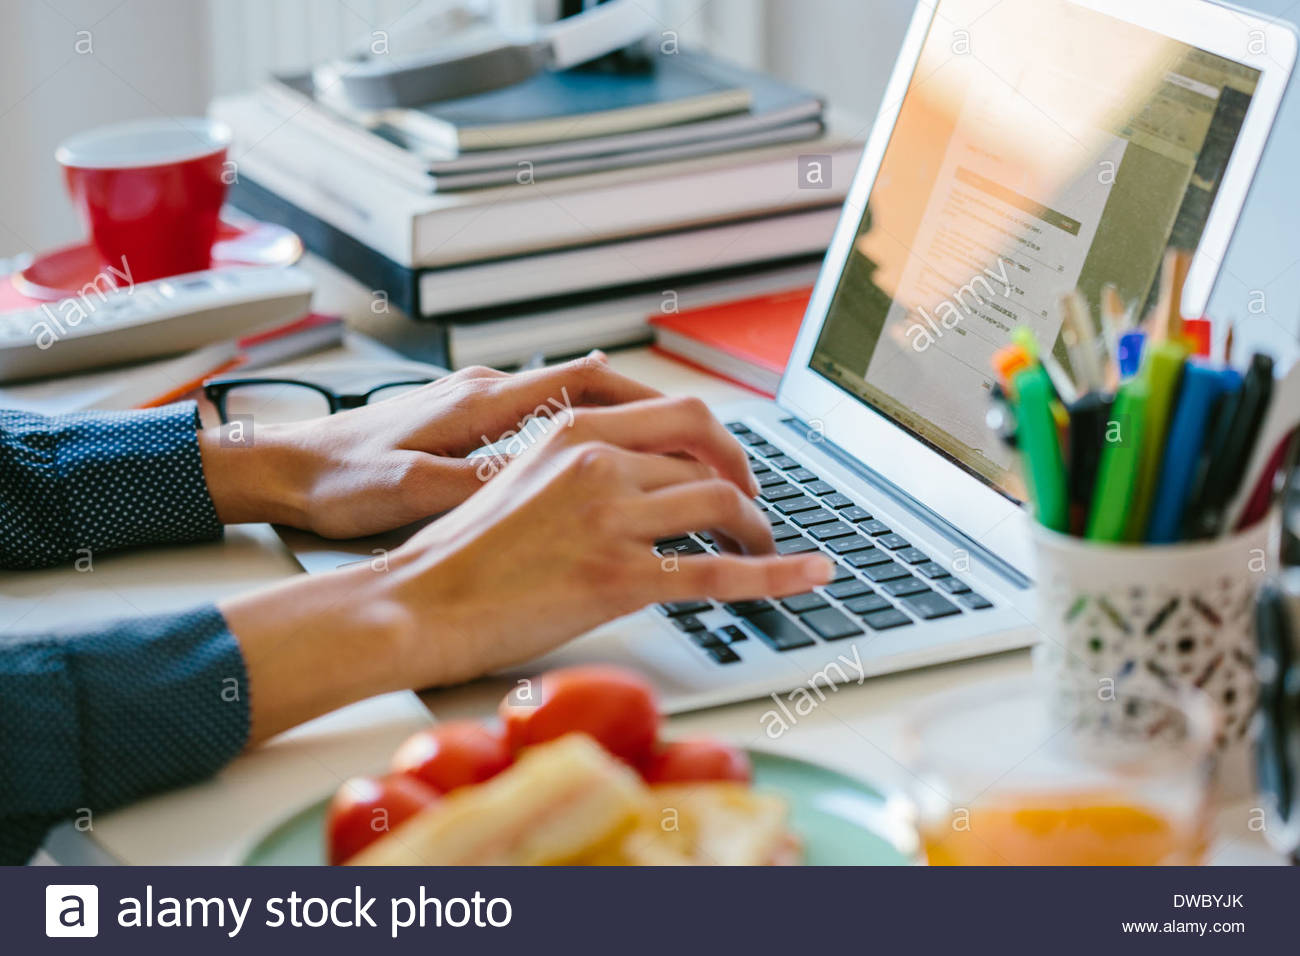 Young woman using laptop while breakfasting - Stock Image